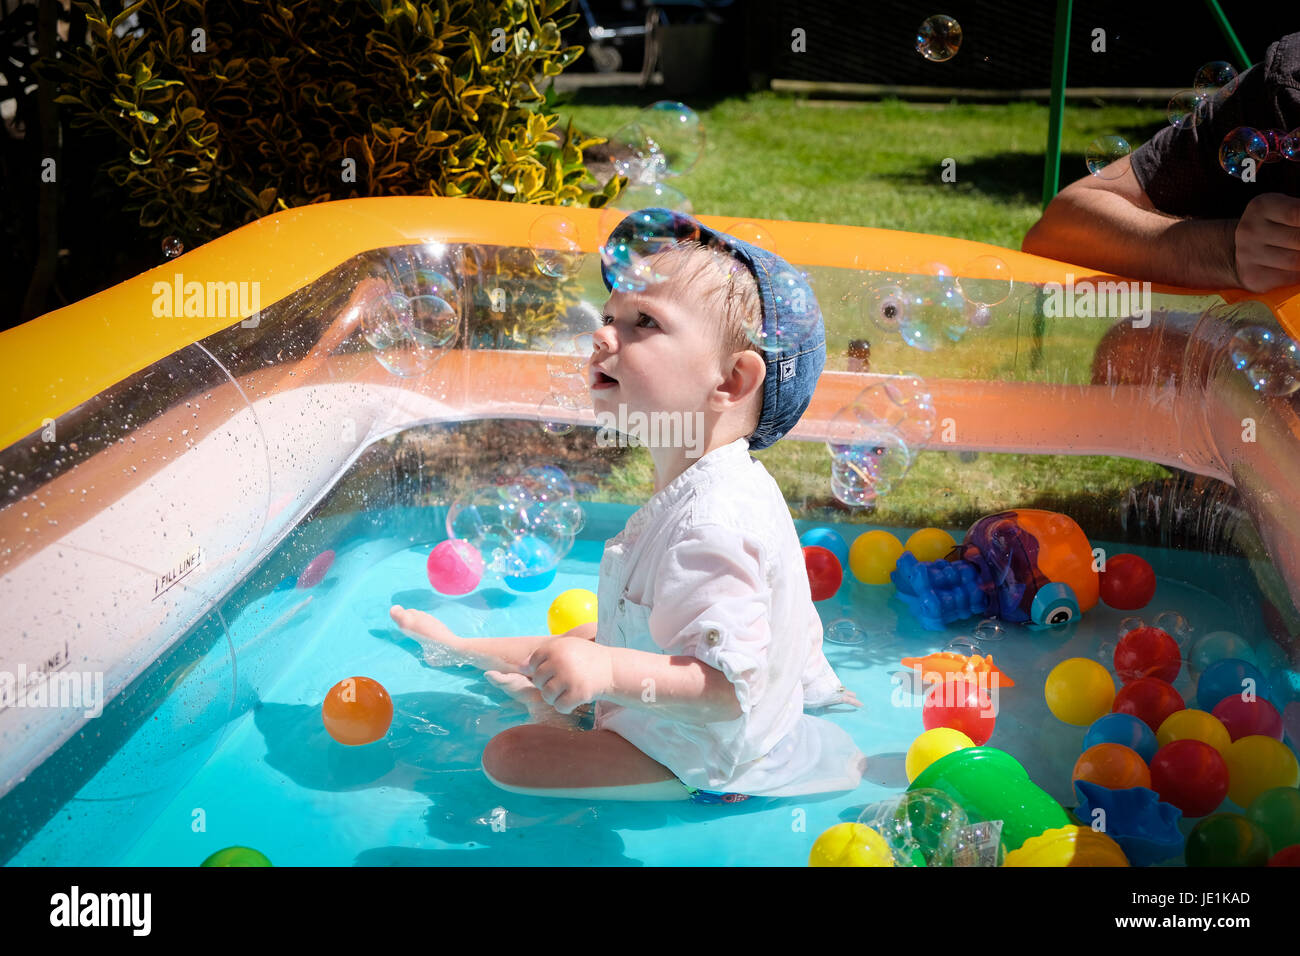 child playing in paddling pool on sunny day - Stock Image